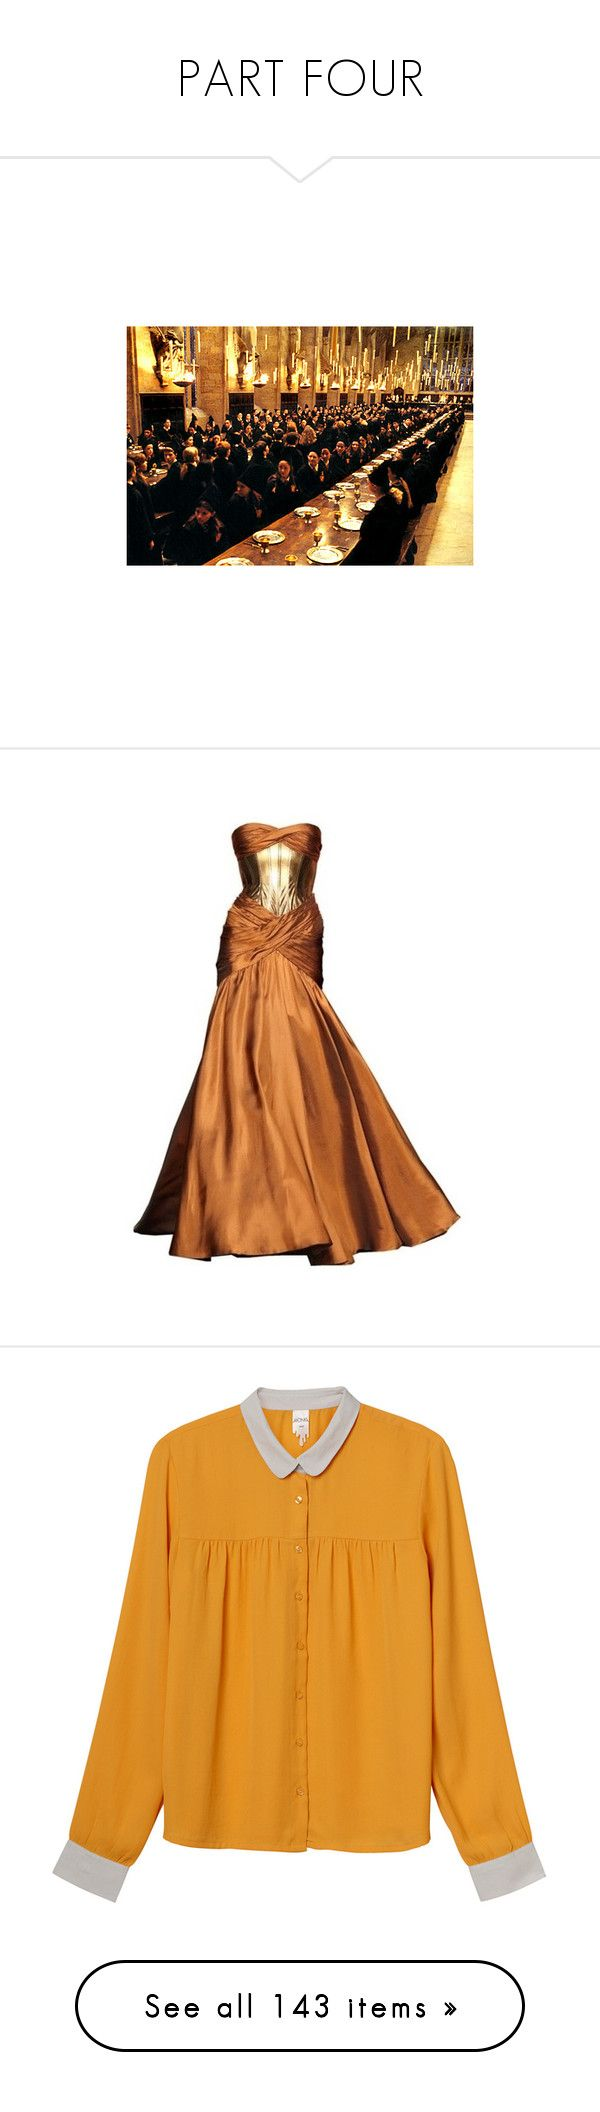 """PART FOUR"" by magical-muse ❤ liked on Polyvore featuring harry potter, hogwarts, backgrounds, pictures, hp, dresses, gowns, long dresses, brown gown and brown evening dress"